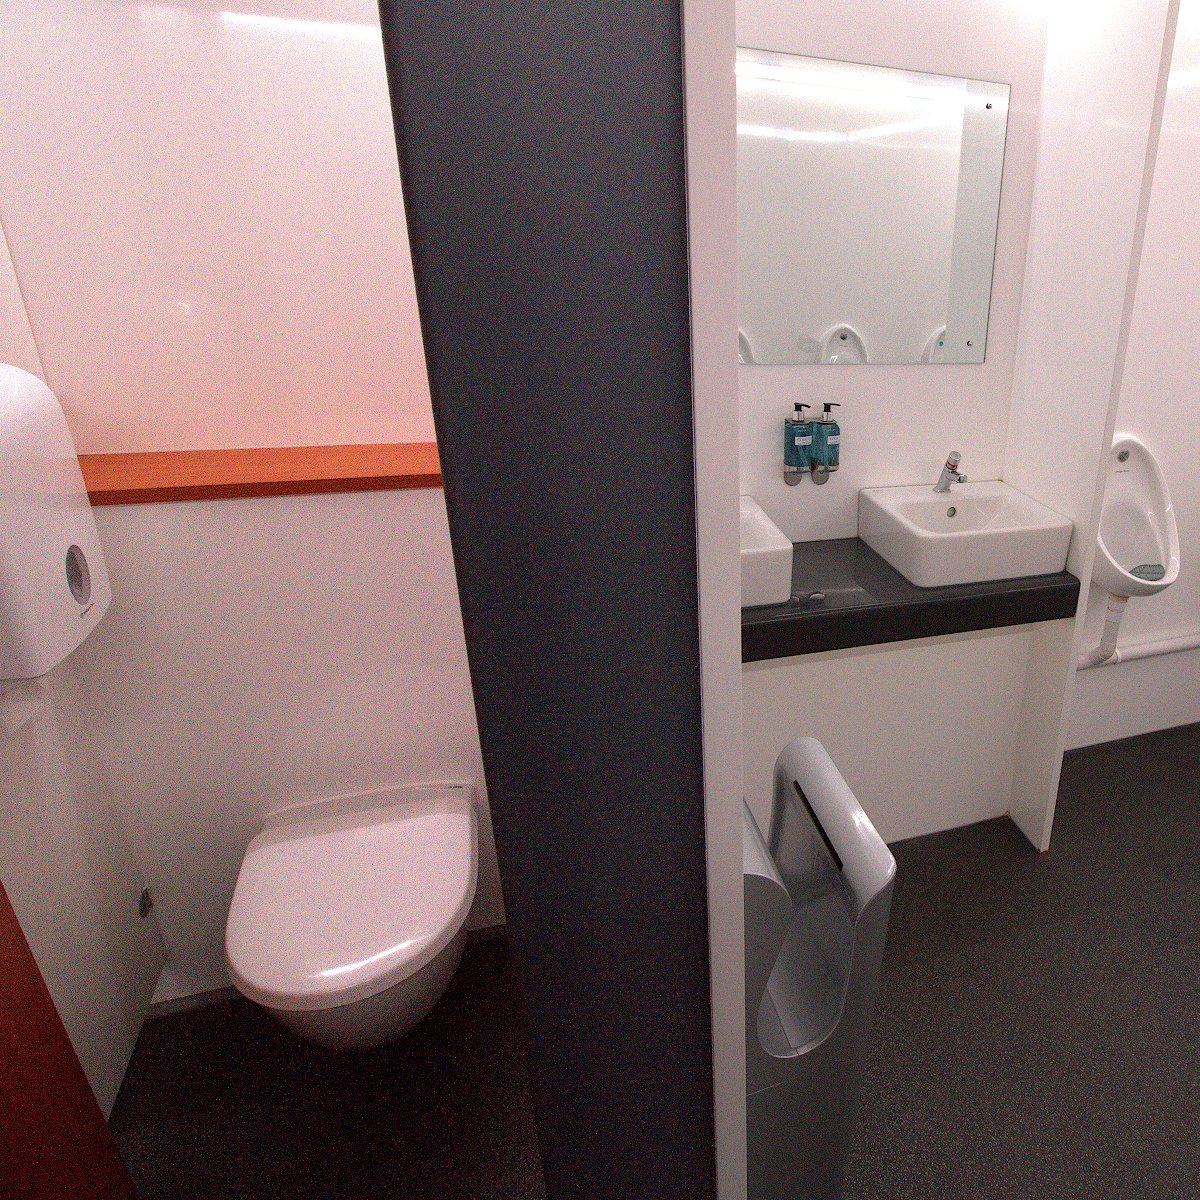 Male 2 + 7 VACPOD Festivals Concerts Exclusive VIP Toilets Rental Delivery Onsite Service